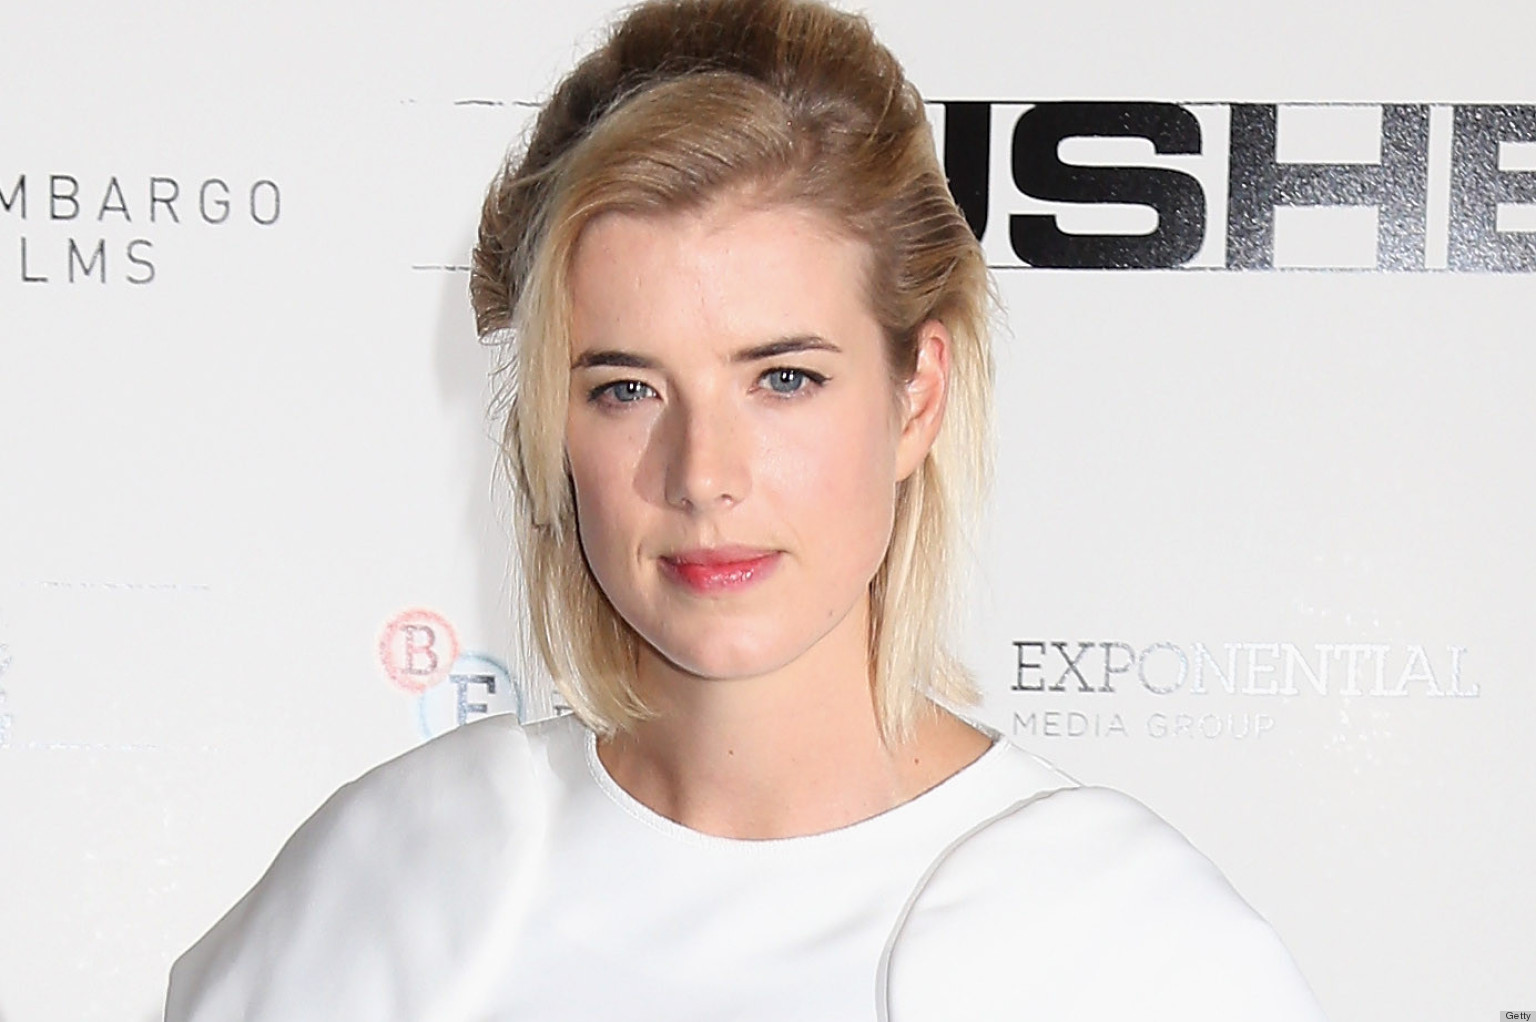 Agyness Deyn Officially Retires From Modeling To Pursue Acting   HuffPost